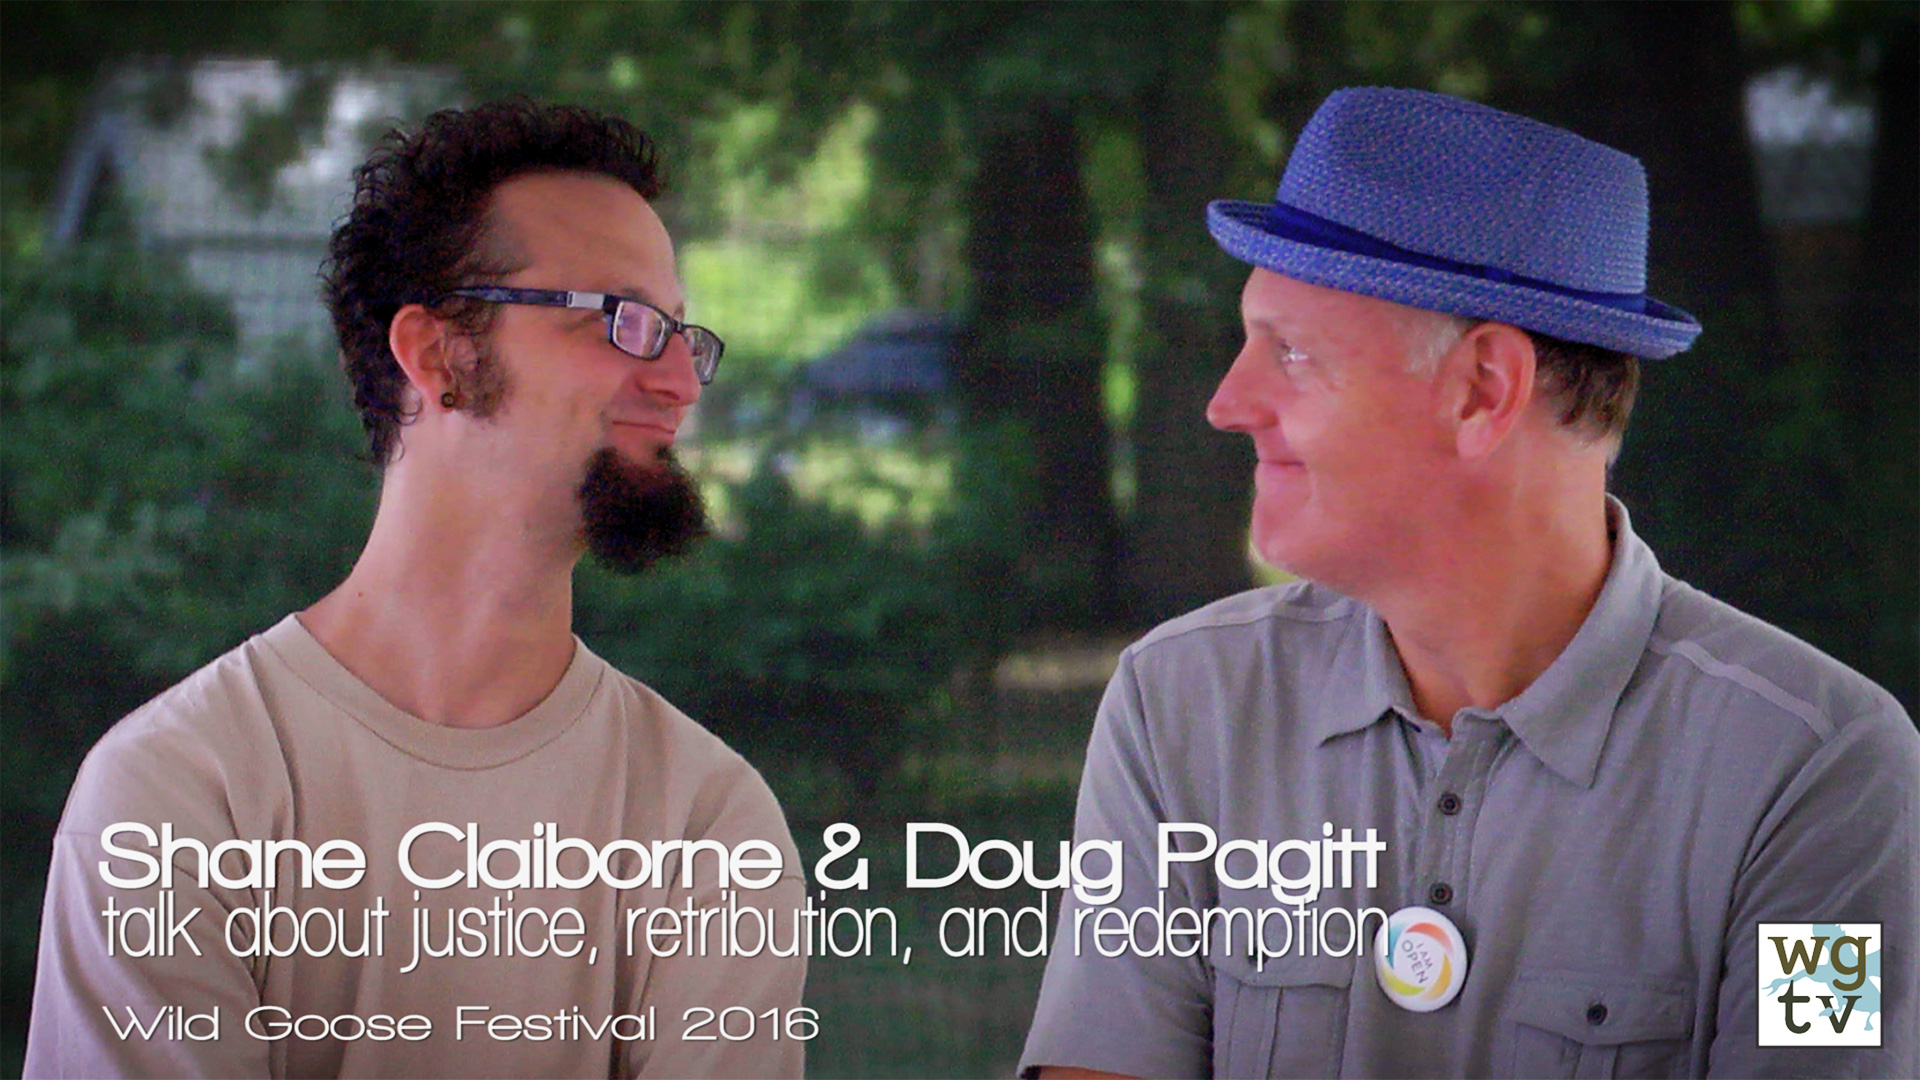 Shane Claiborne and Doug Pagitt